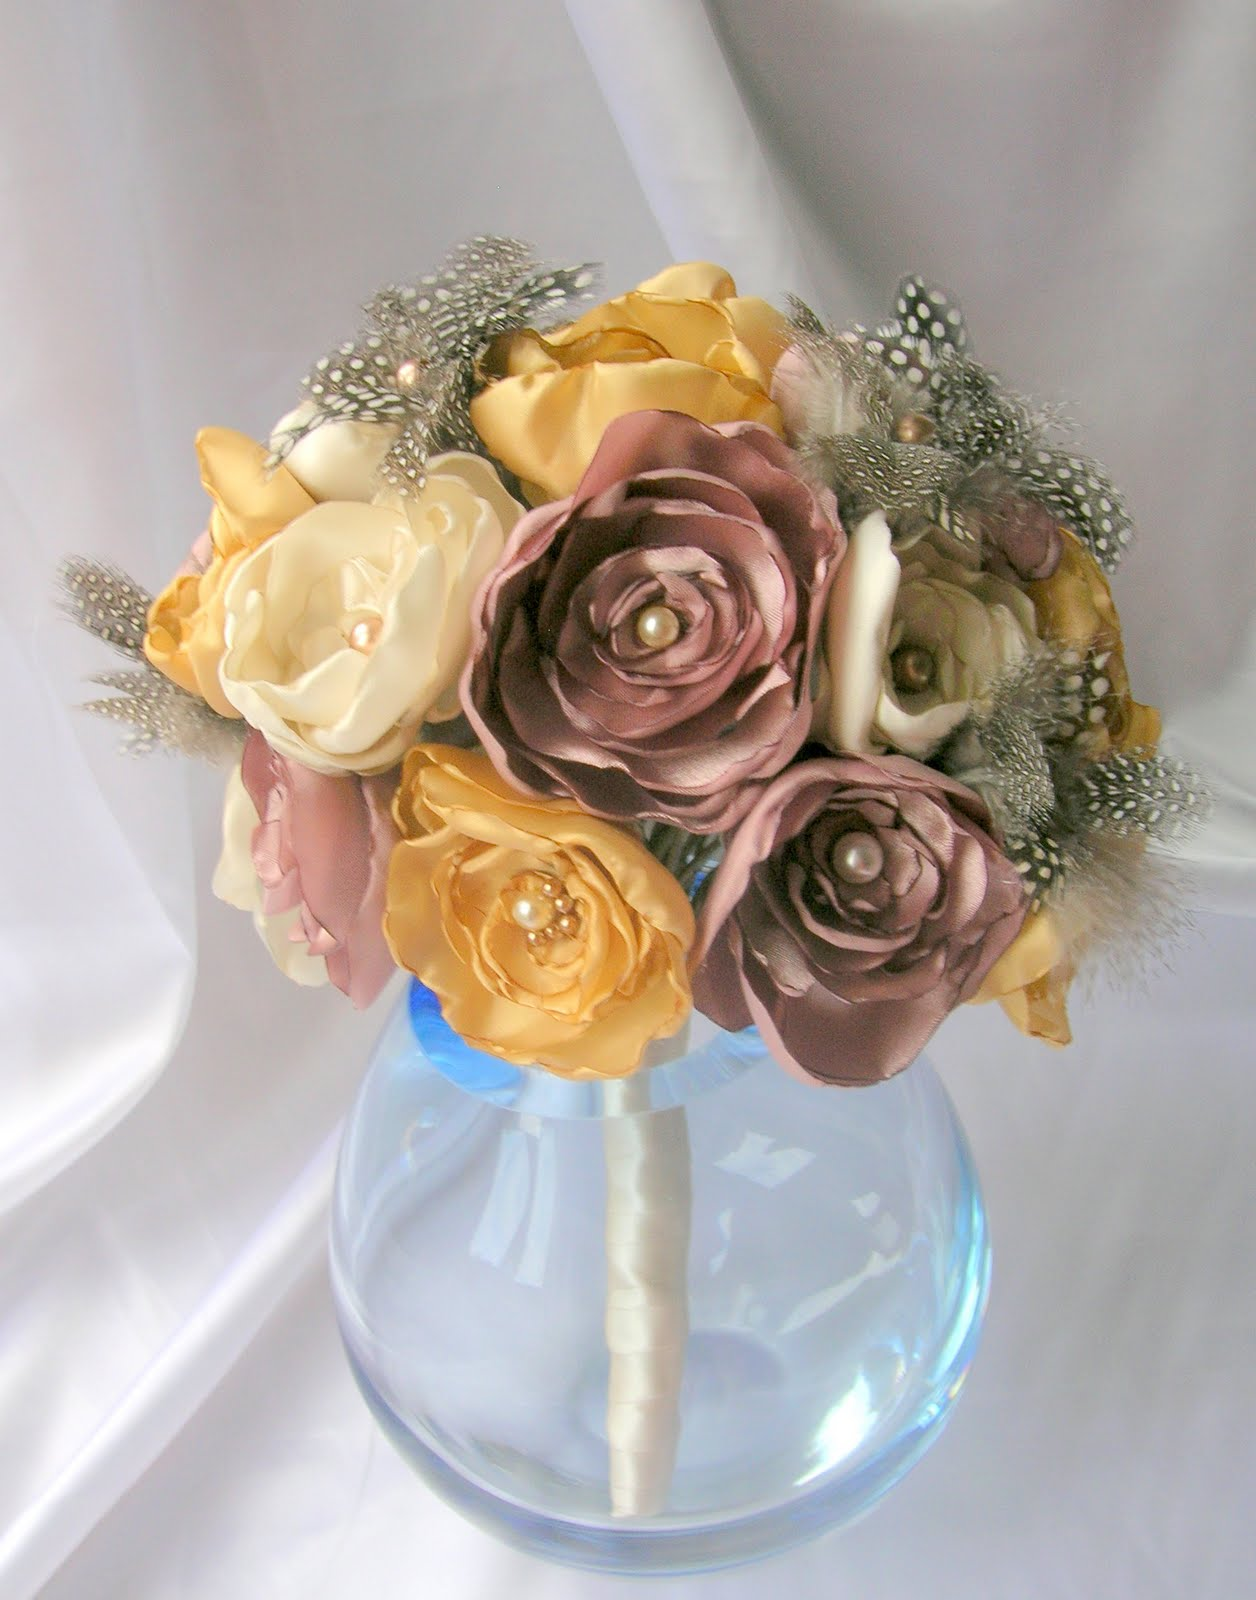 Fayes Flowers By Fashmore New Bouquet In Gold Ivory And Dusky Pink